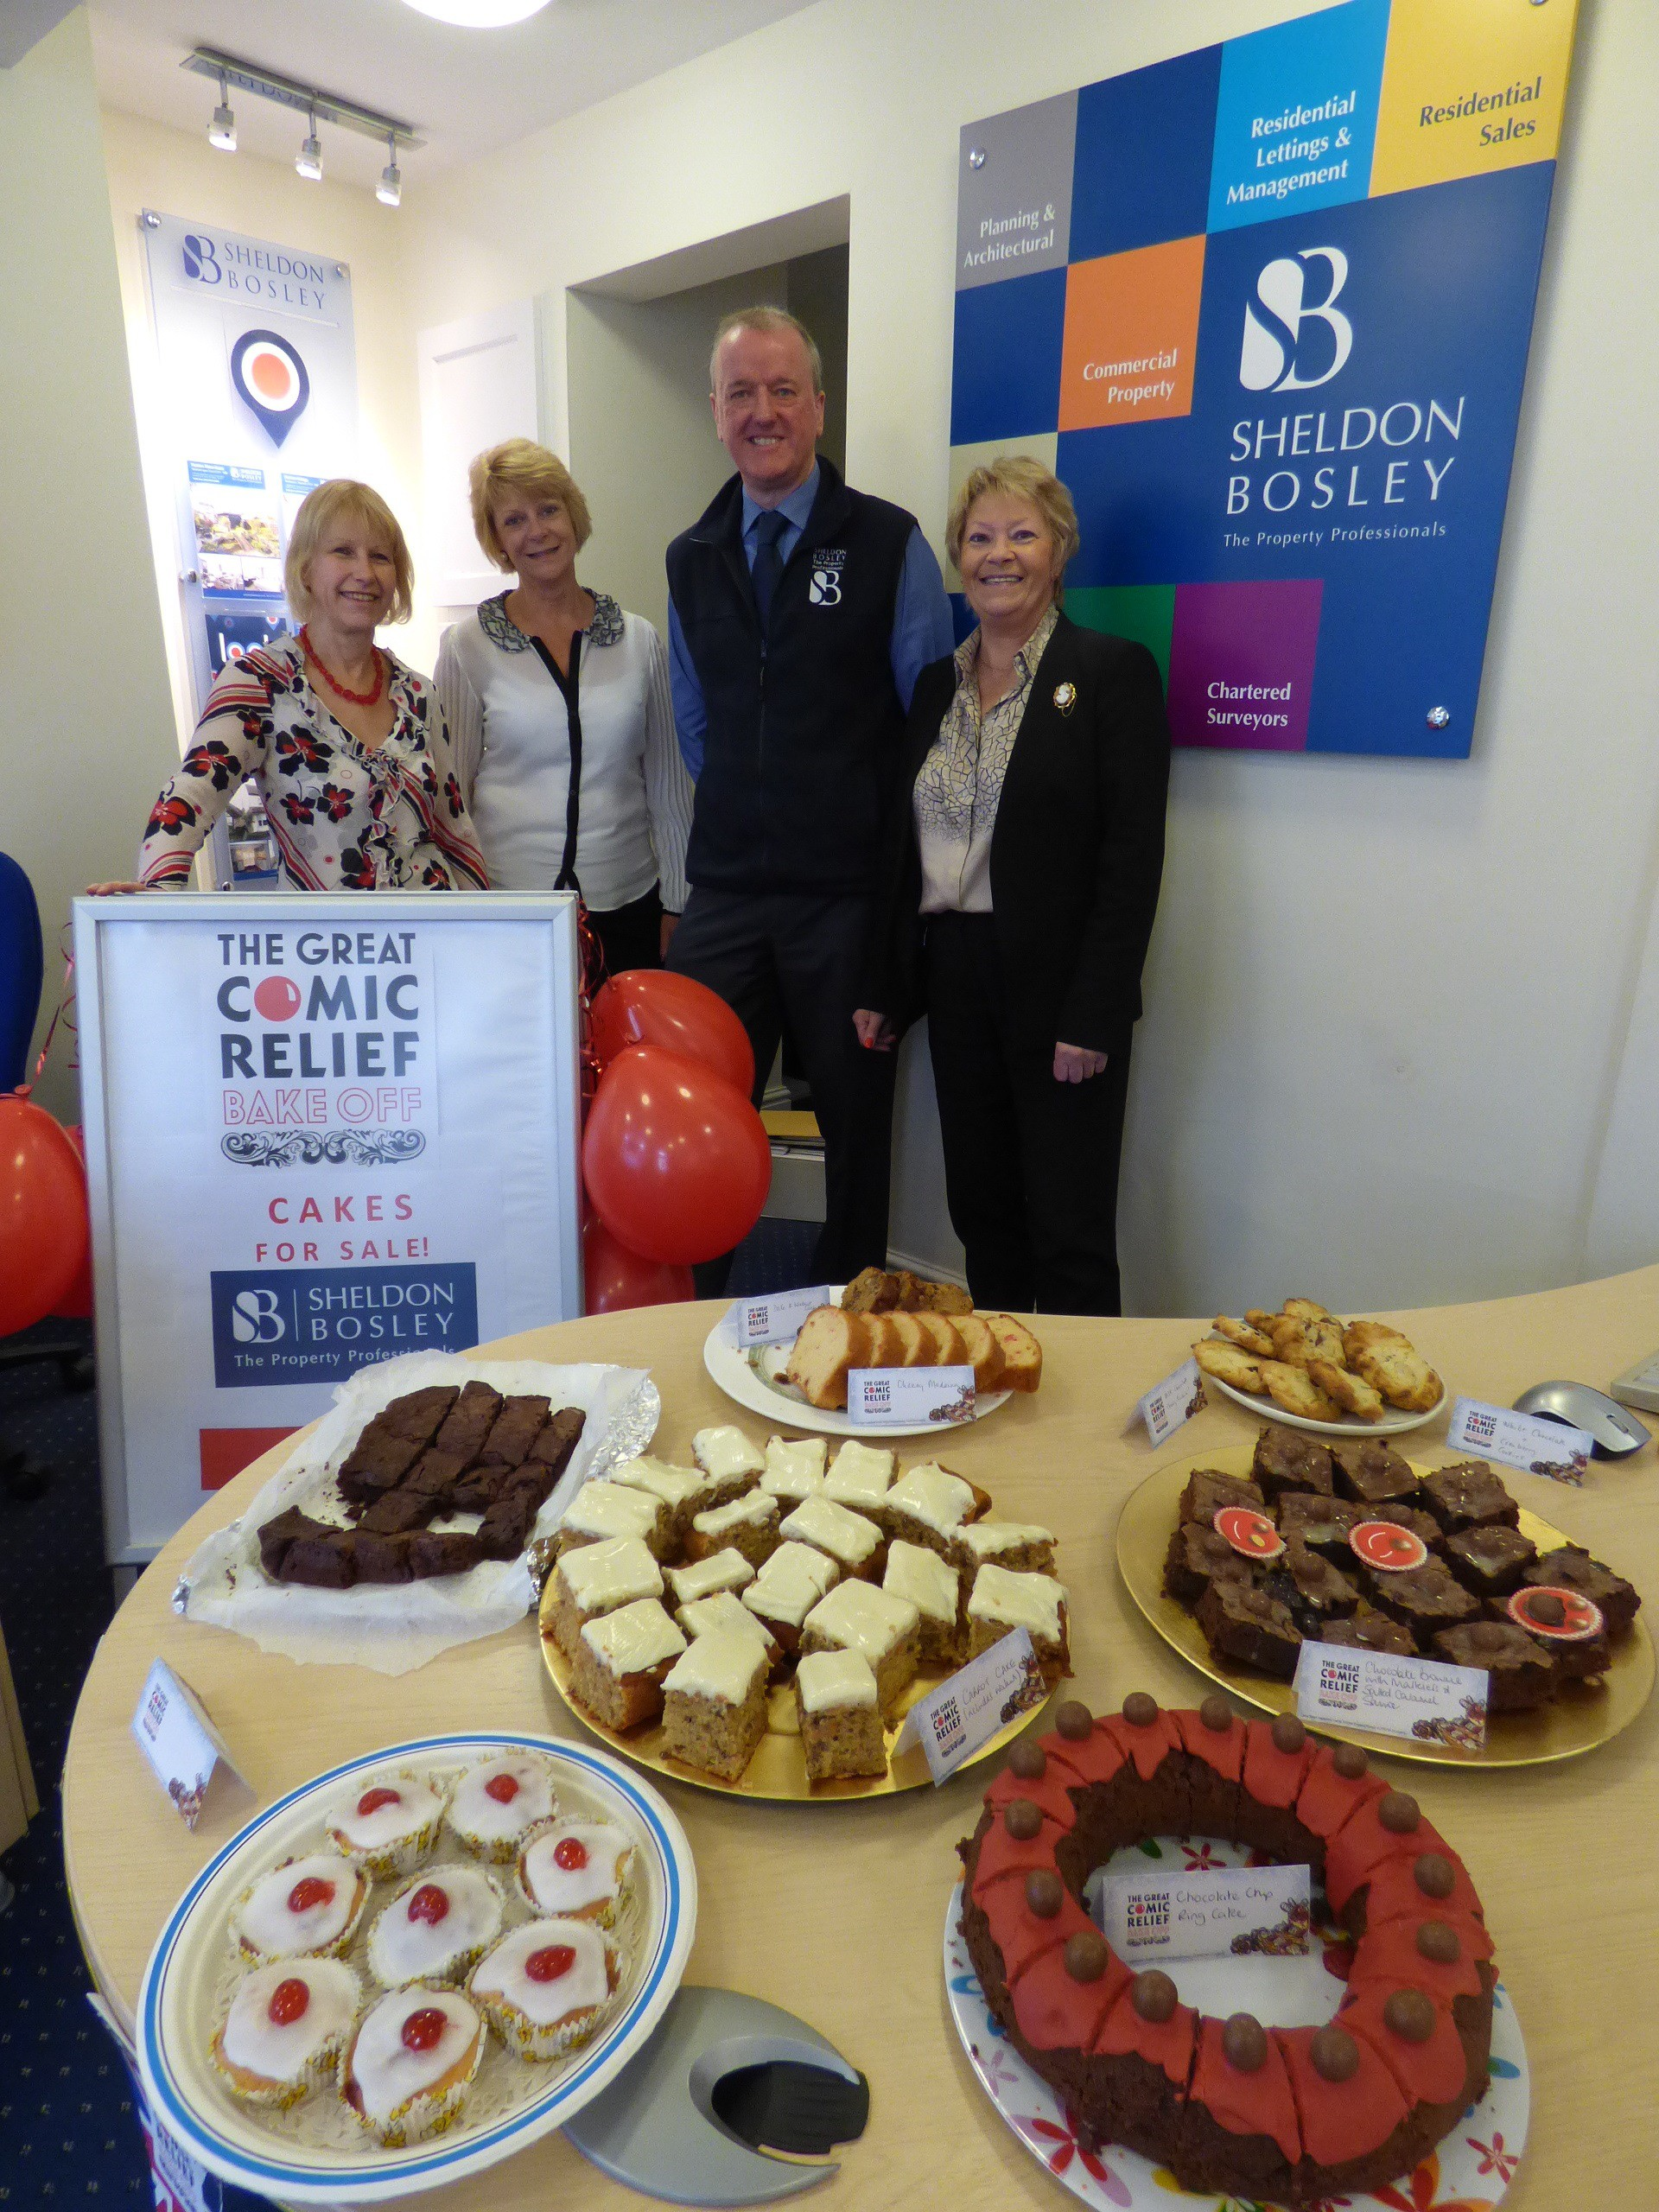 comic relief bake sale 2015 Sheldon Bosley reception